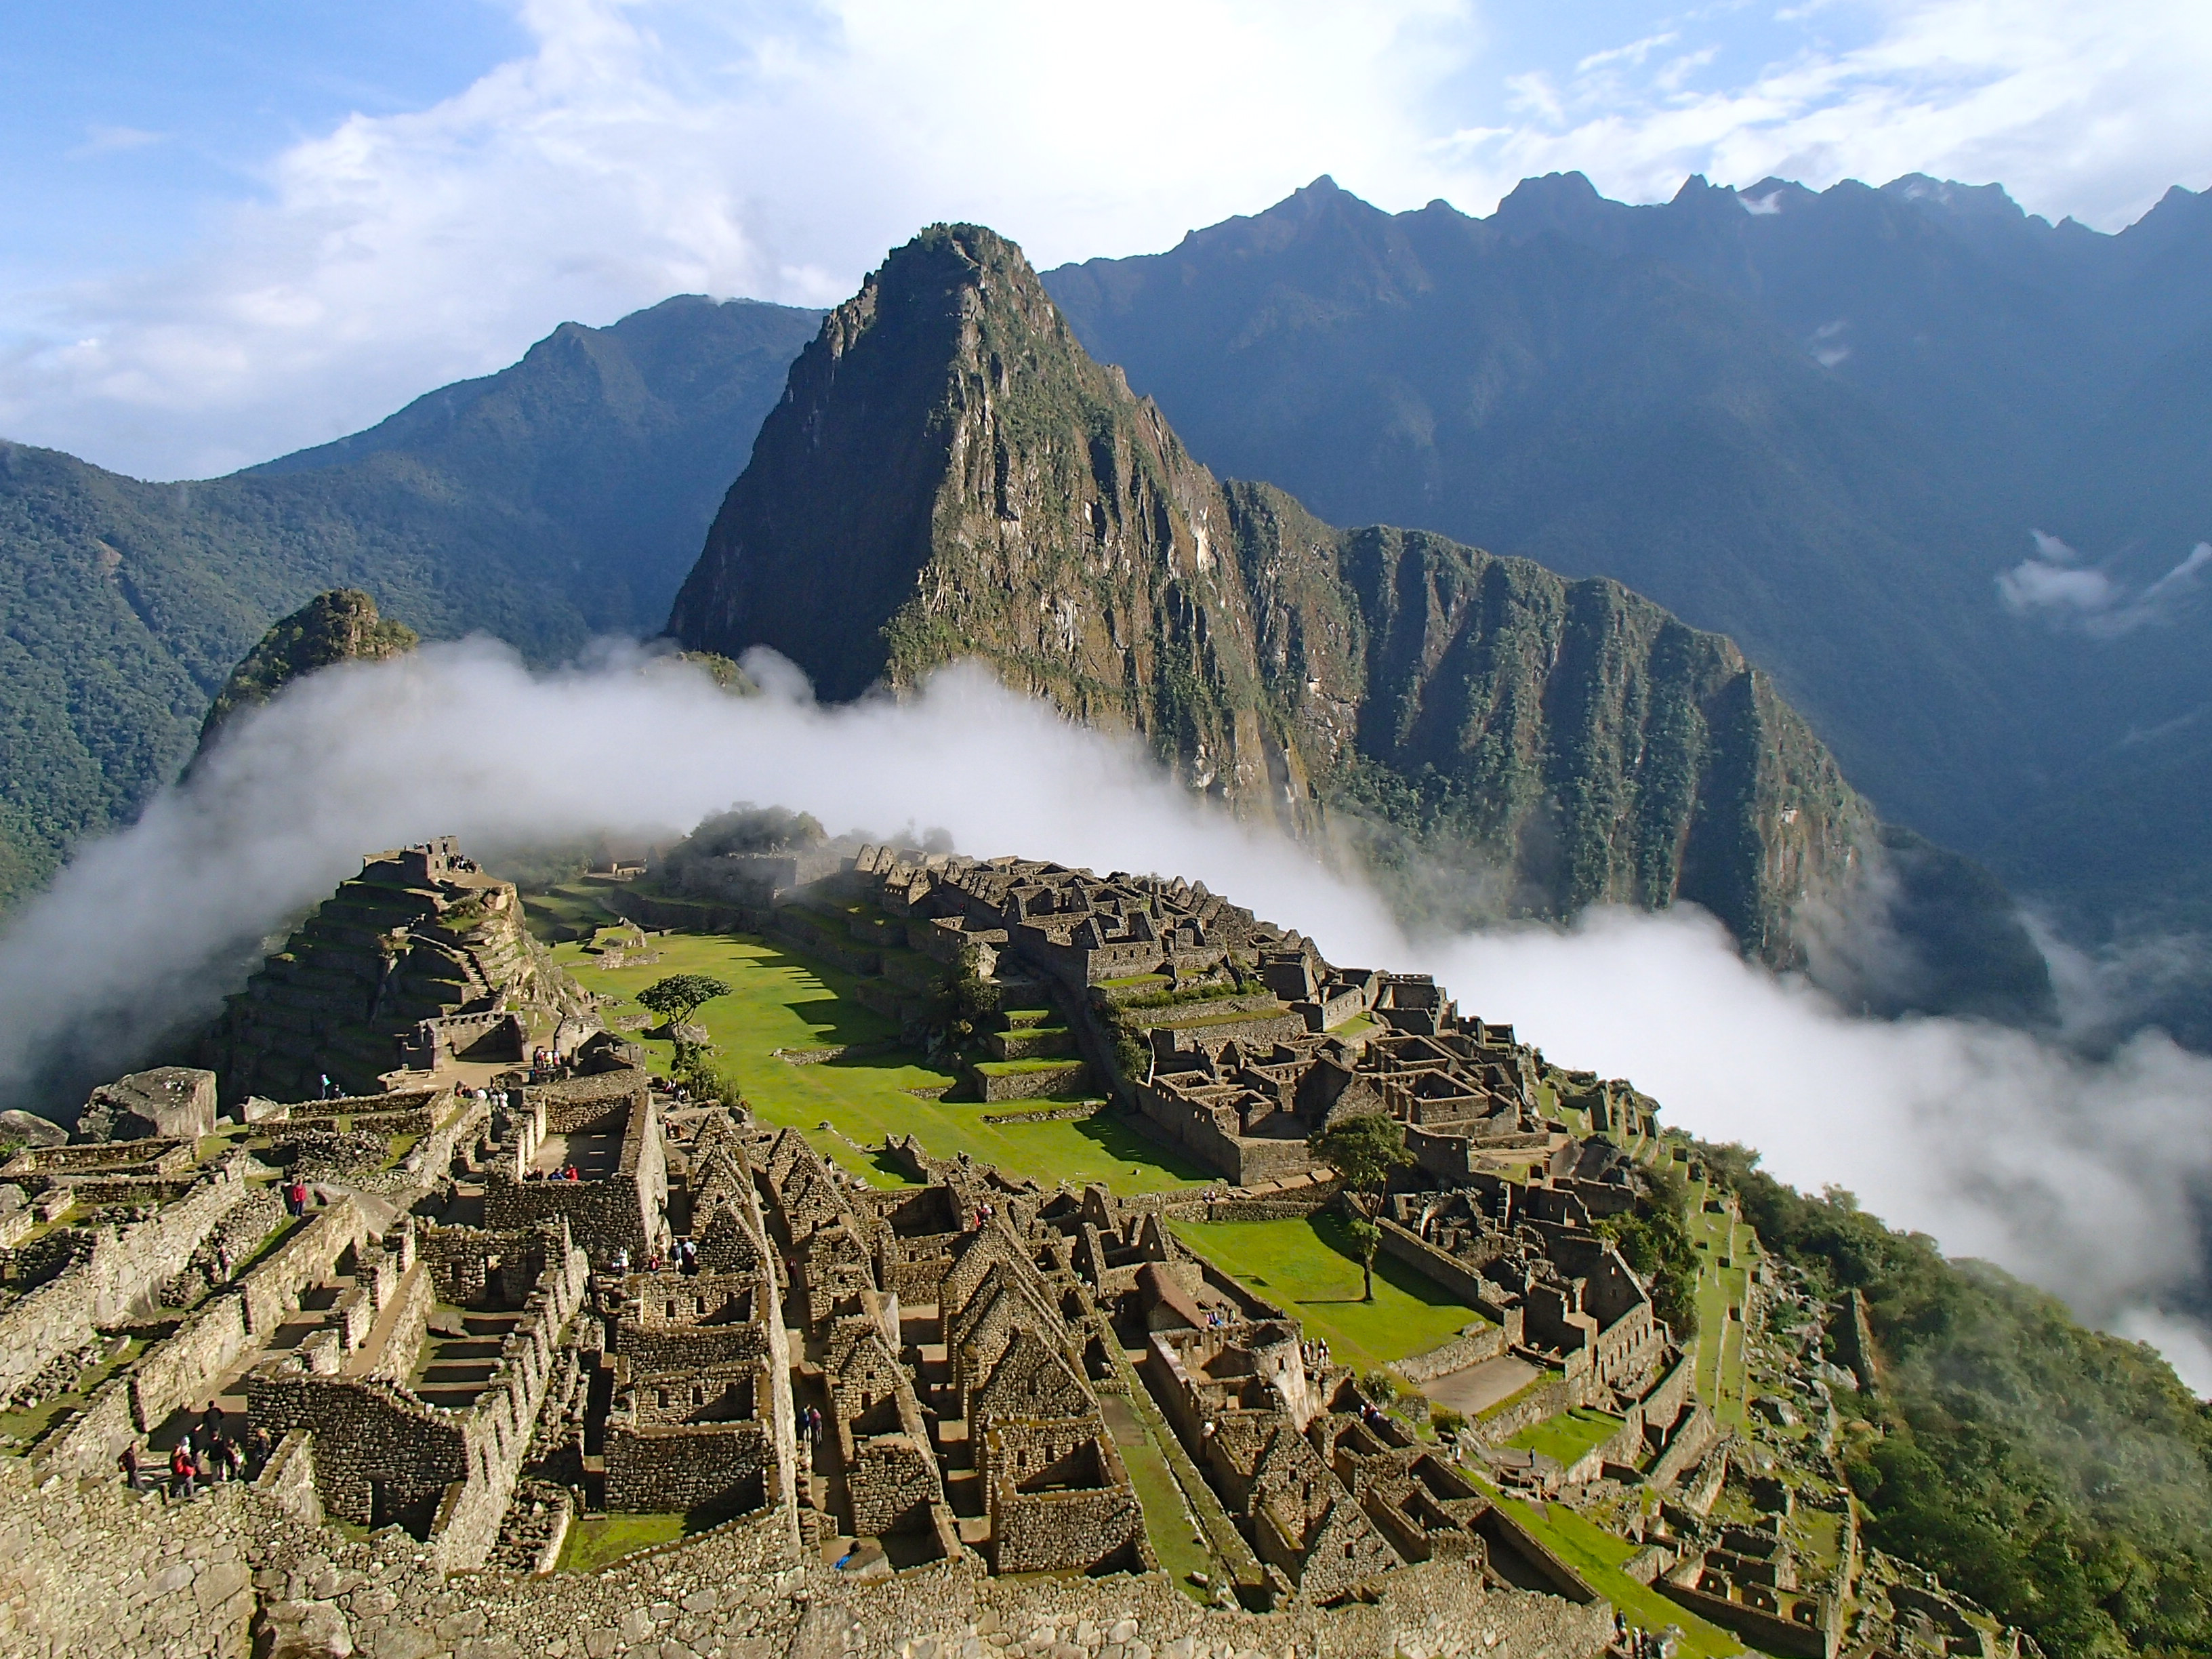 hiking the 4 day inca trail to machu piccu peru treks best trails in peru santa cruz trek inca trail tours